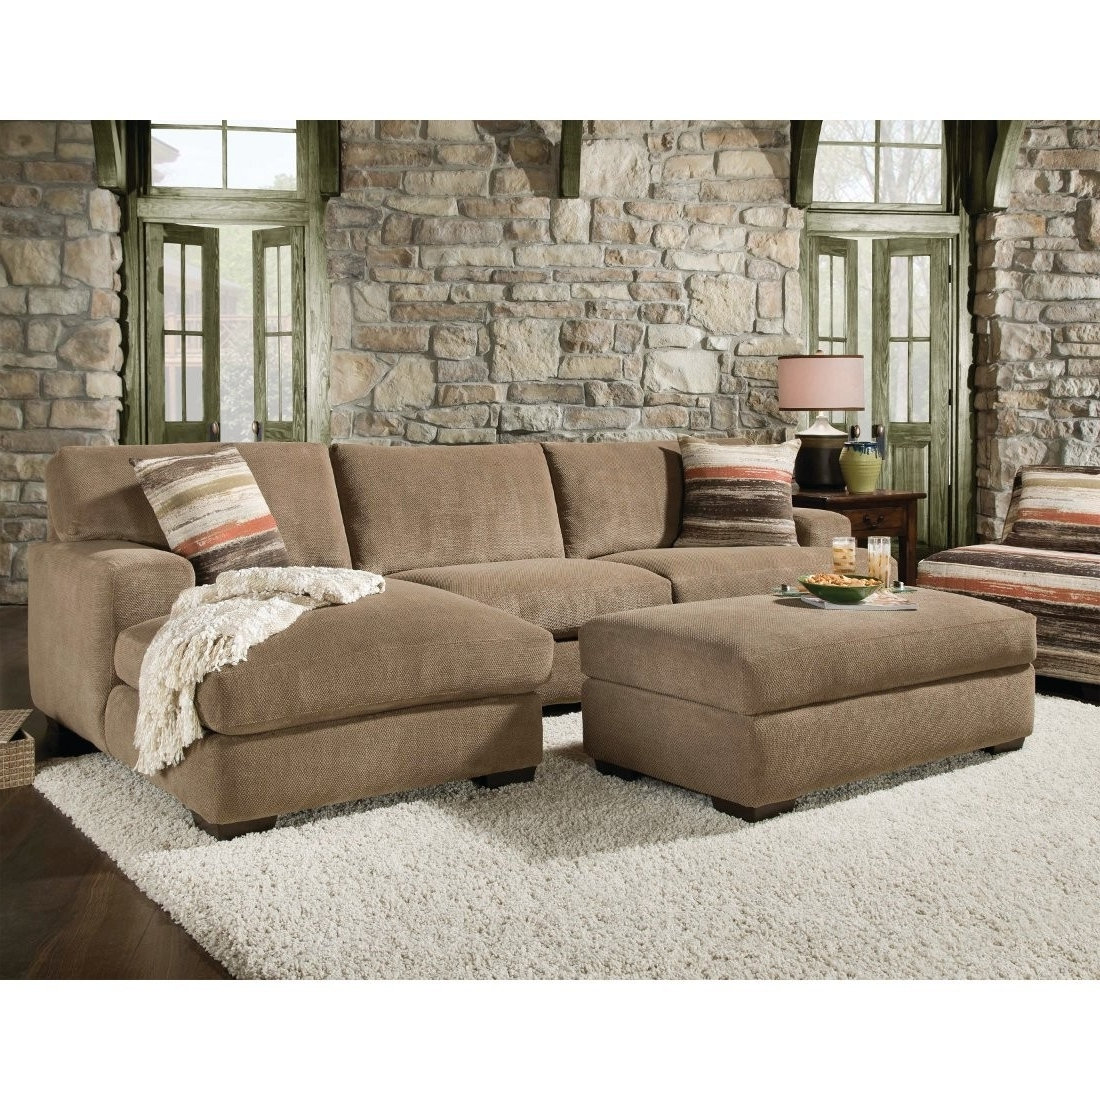 Beautiful Sectional Sofa With Chaise And Ottoman Pictures For Popular Sofas With Large Ottoman (View 2 of 15)